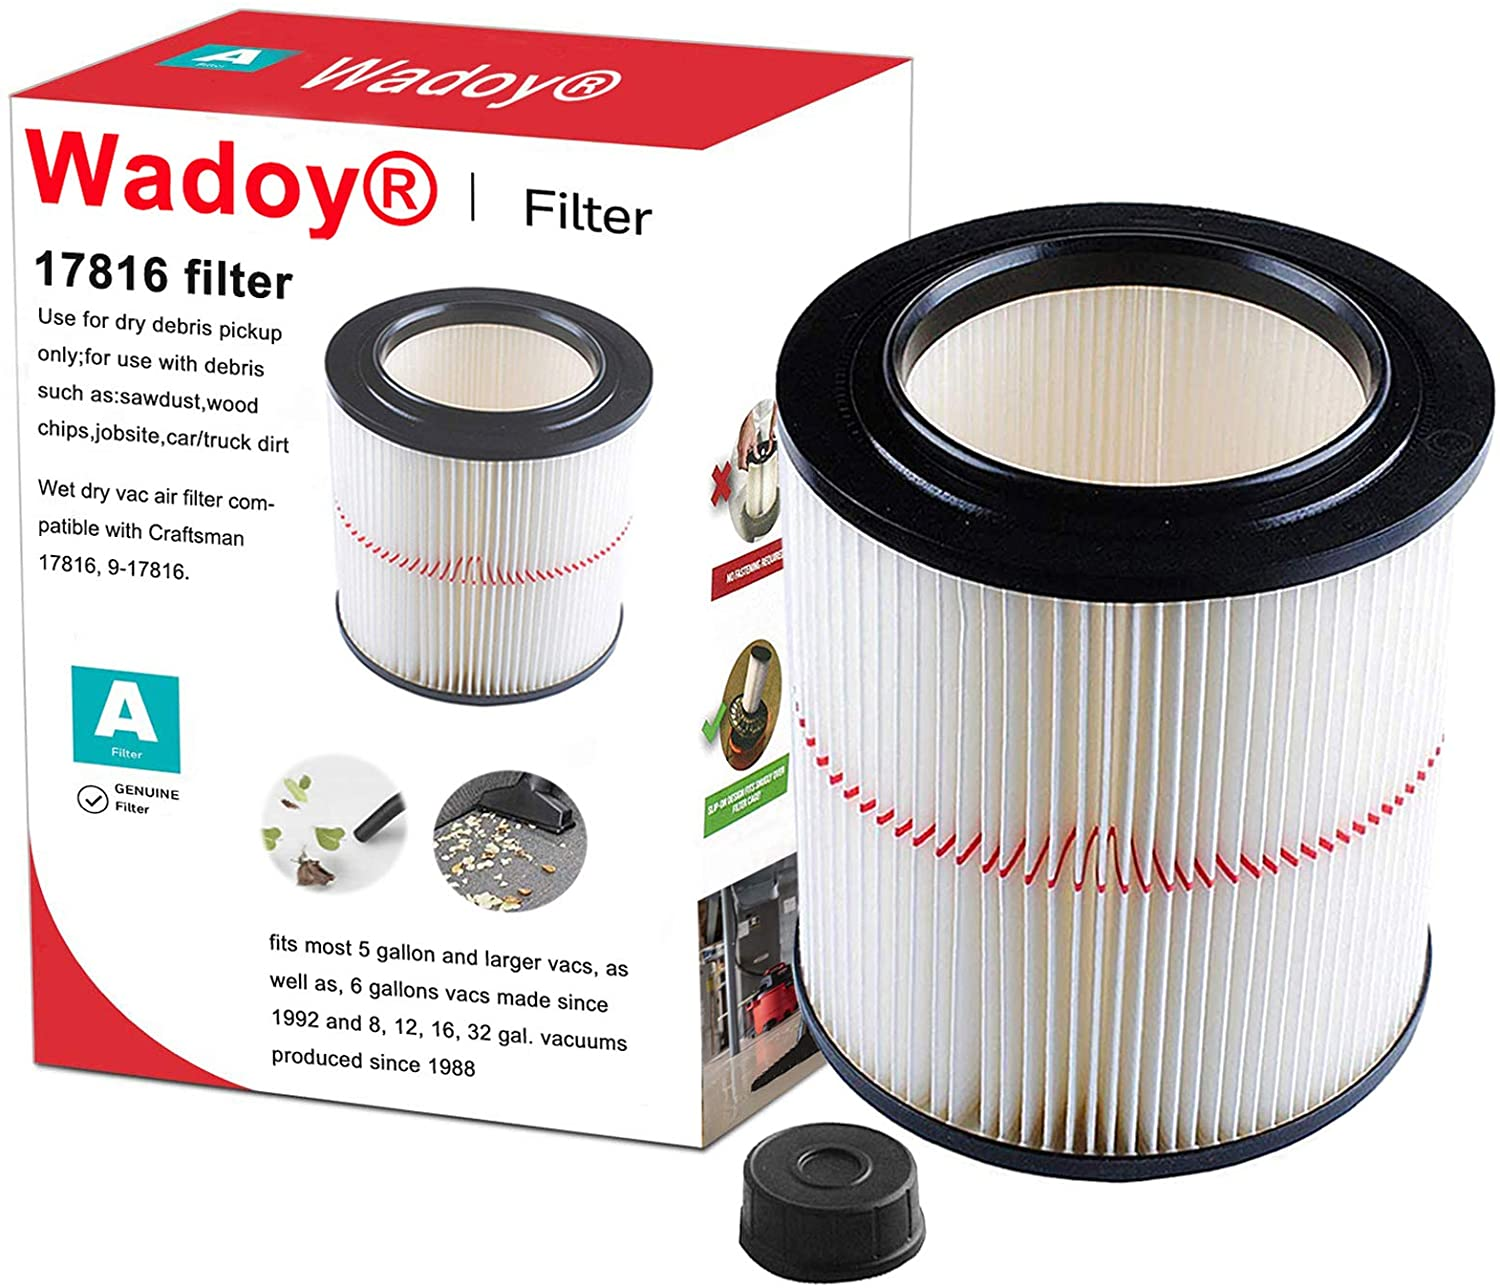 Wadoy 17816 Filter Compatible with Craftsman Shop Vac 917816, 9-17816 Wet Dry Vac Filter for 5 Gallon Vacuum Cleaner